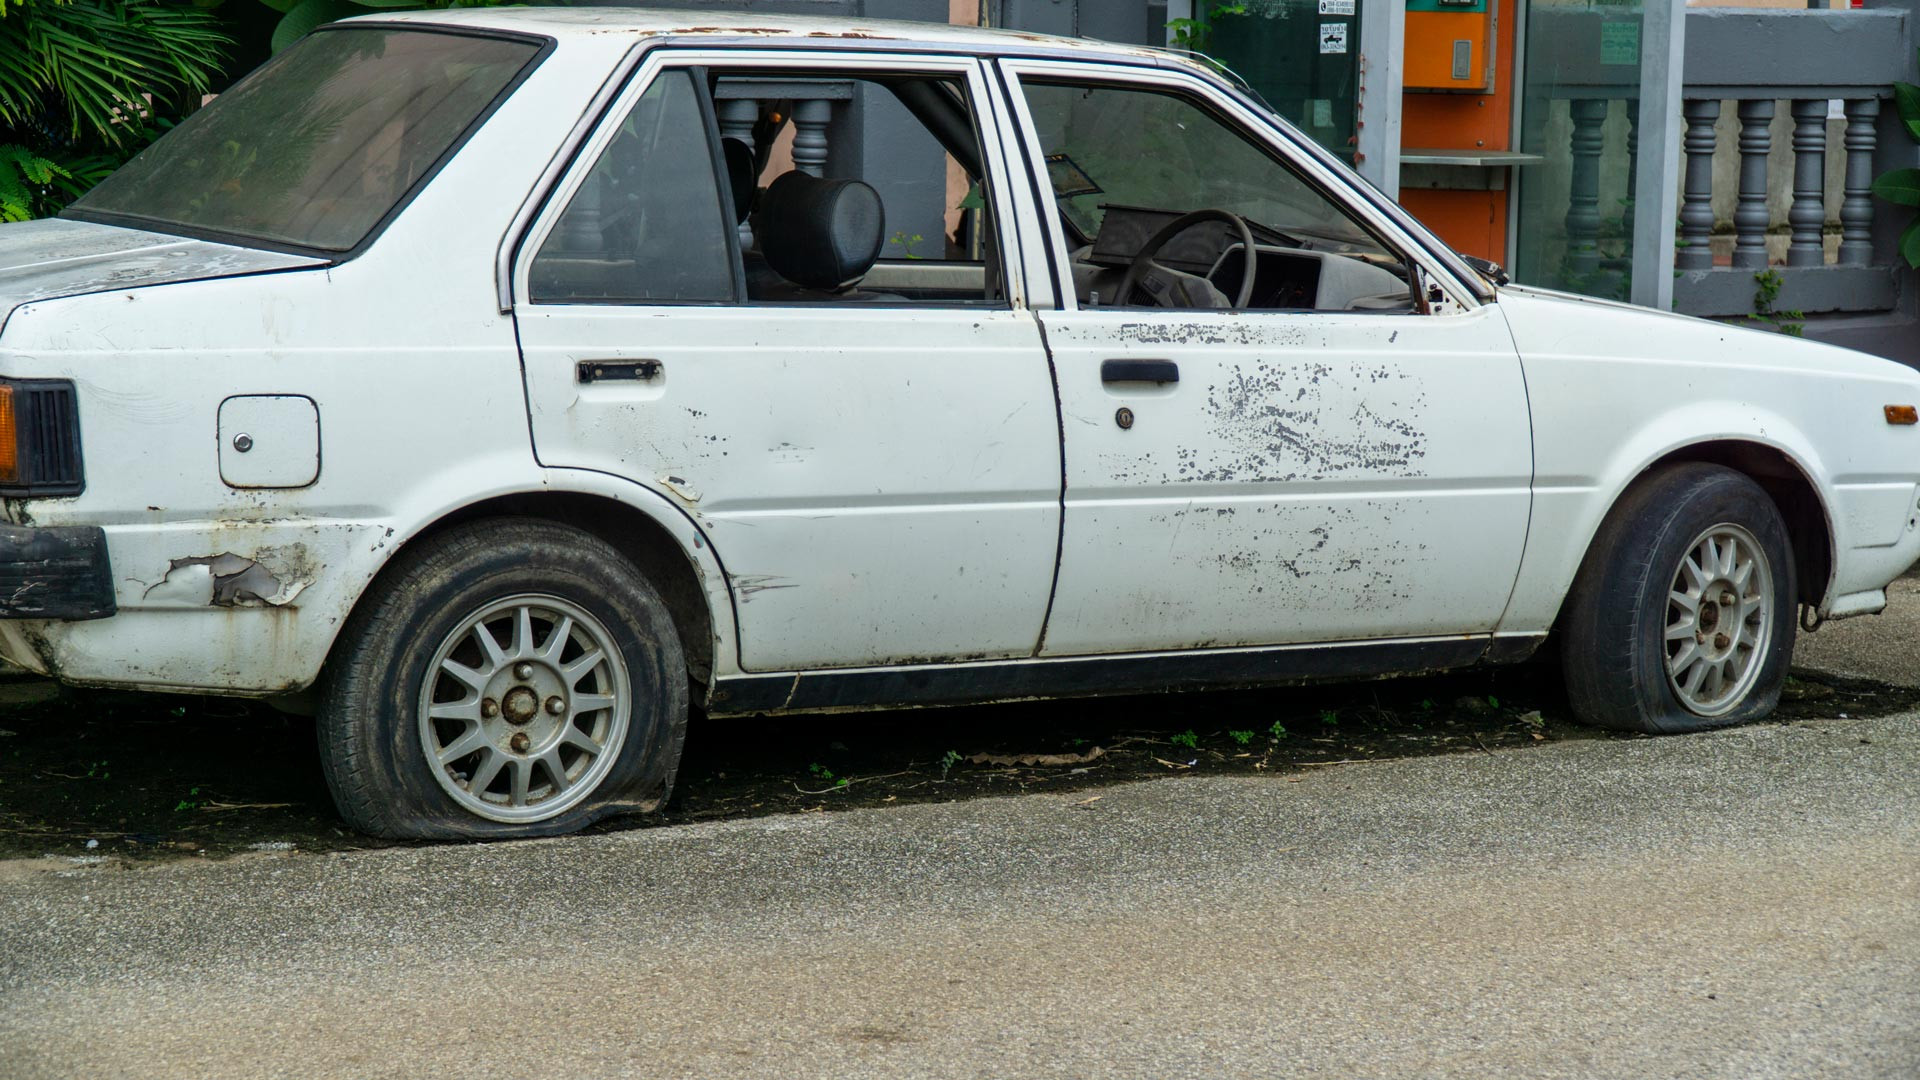 Junk car in bad condition, ready for junk car removal